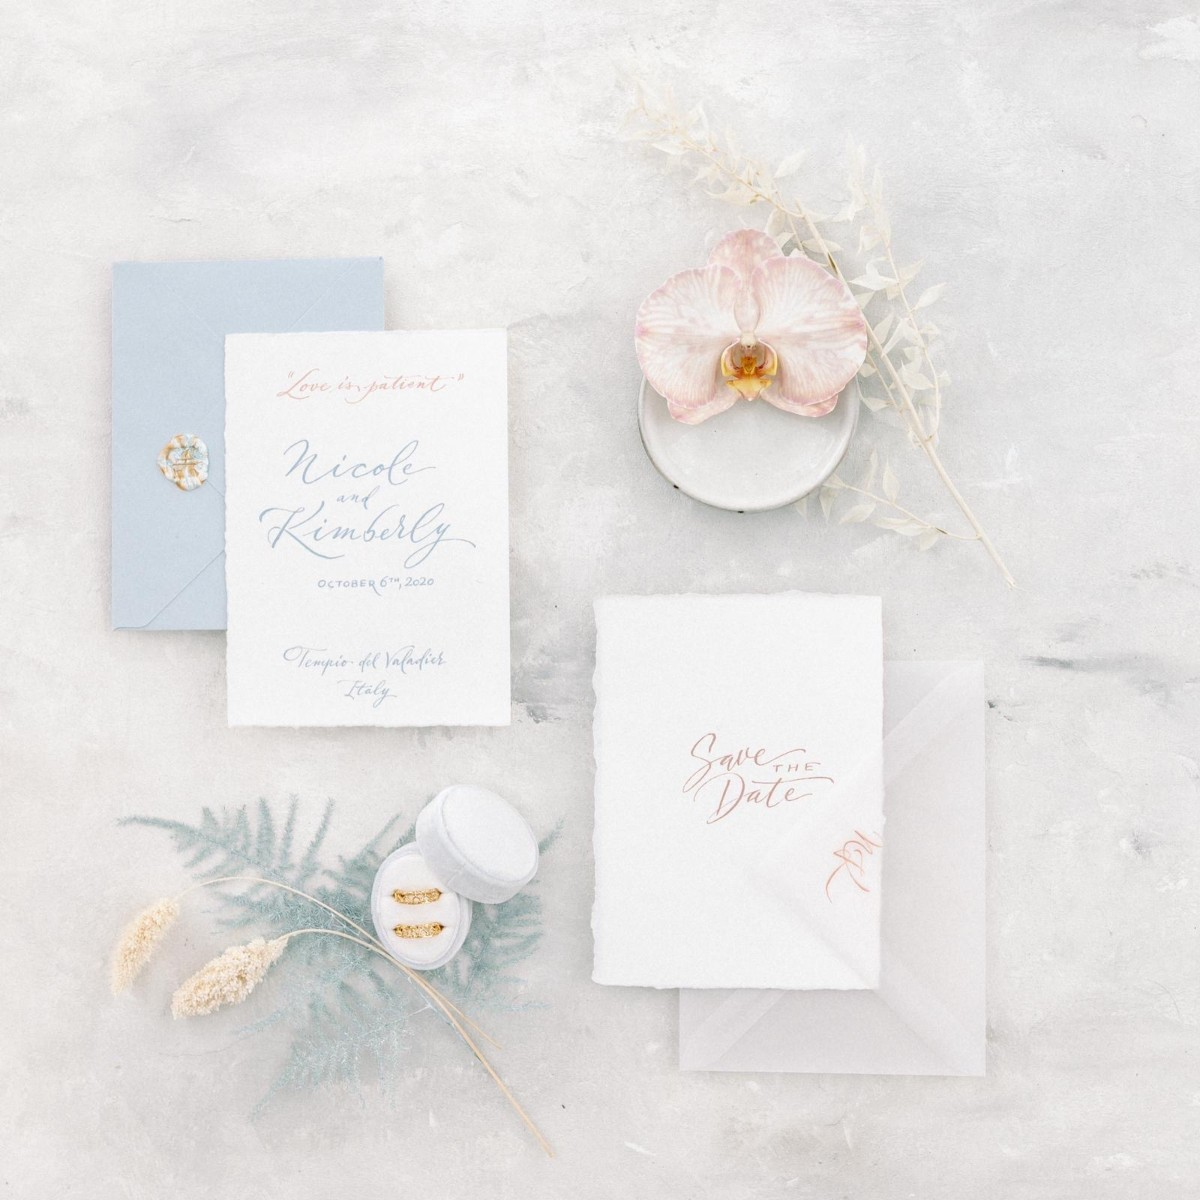 why you need save the date cards - wedding calligraphy studio in Italy - romantic and classic wedding invitation in shades of blue